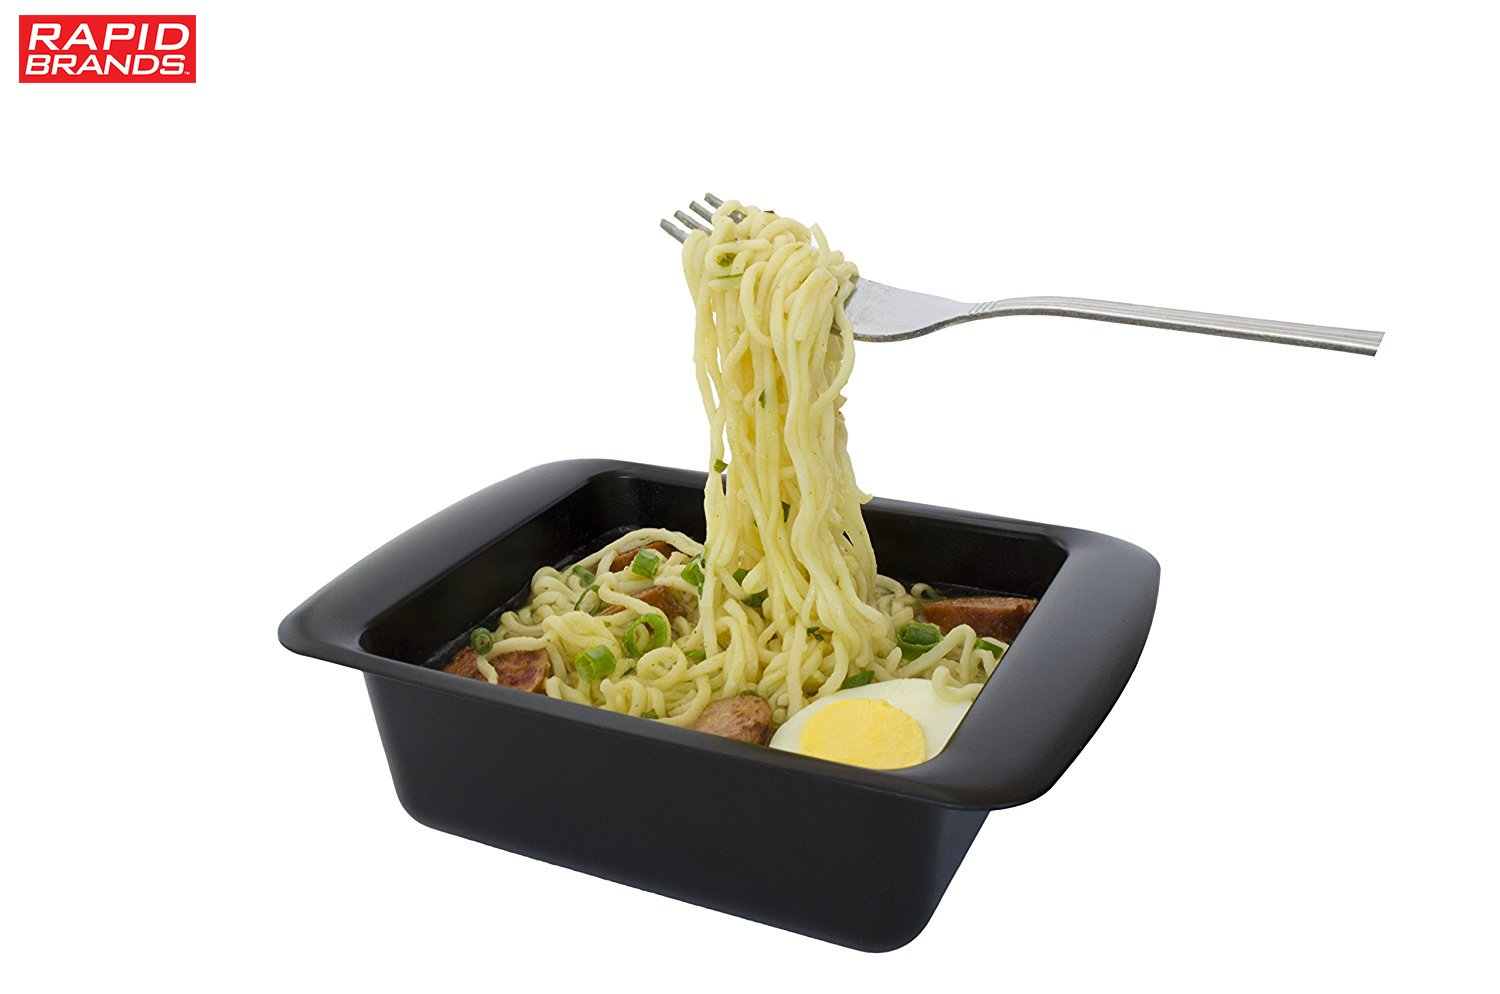 Rapid Ramen Cooker - Microwave Ramen in 3 Minutes - BPA Free and Dishwasher Safe (Four Black) by Rapid Brands (Image #3)